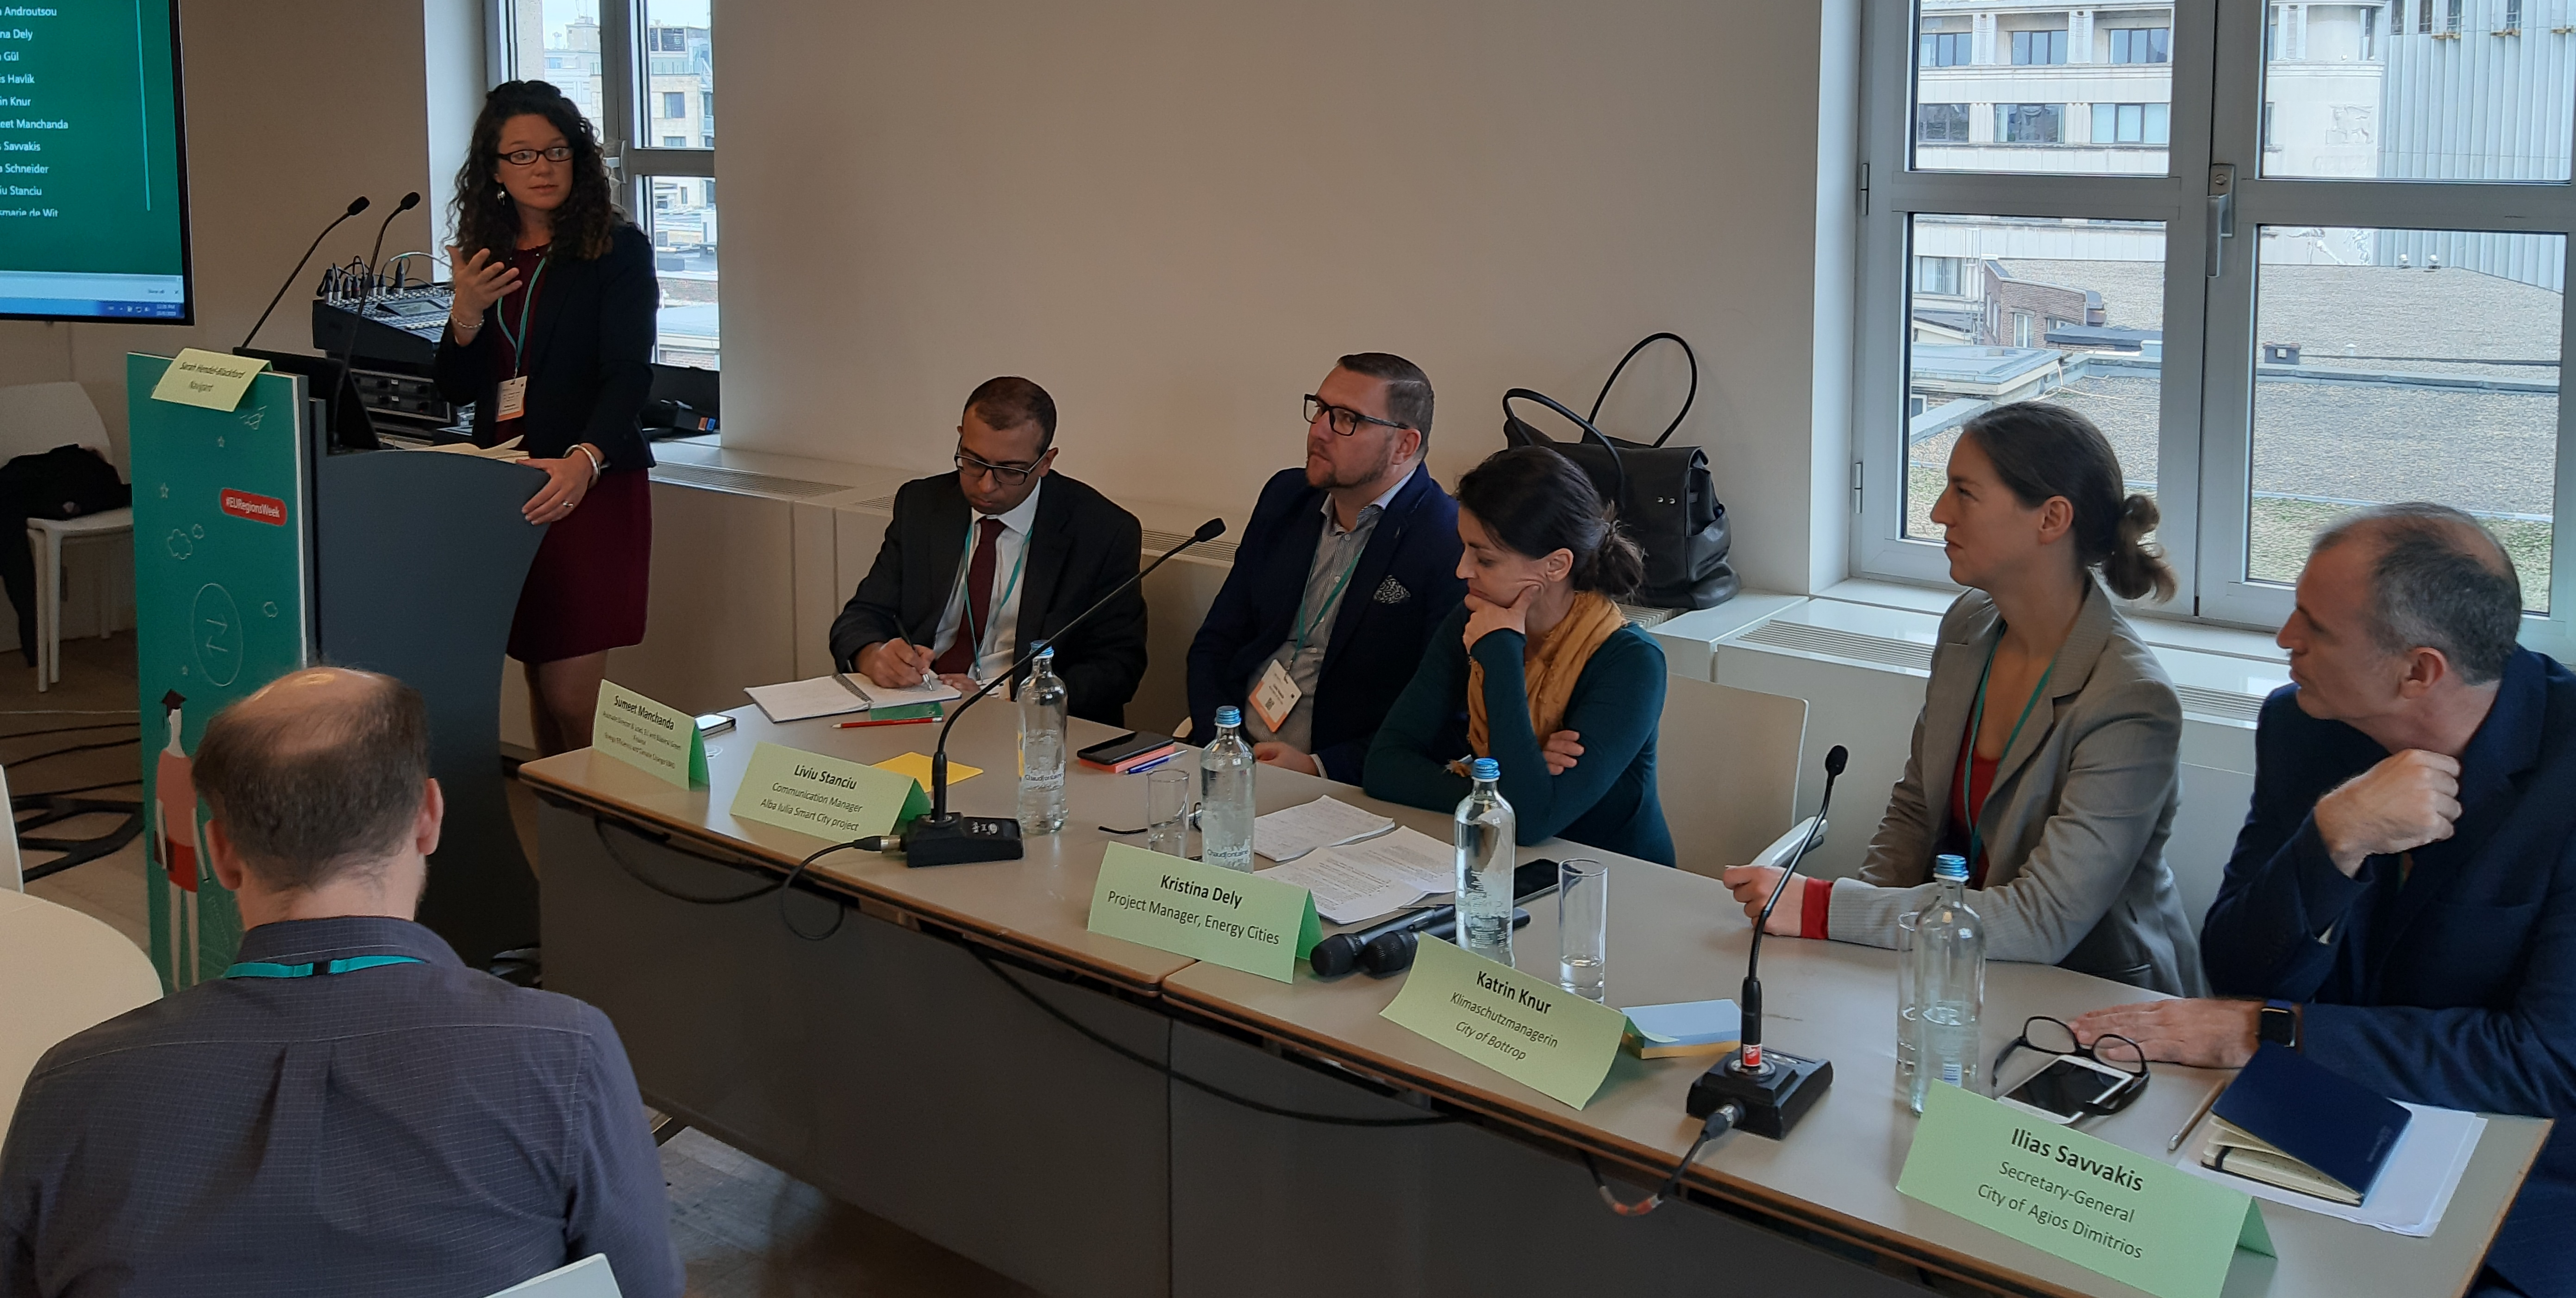 Podiumsdiskussion bei der European Week of Regions and Cities